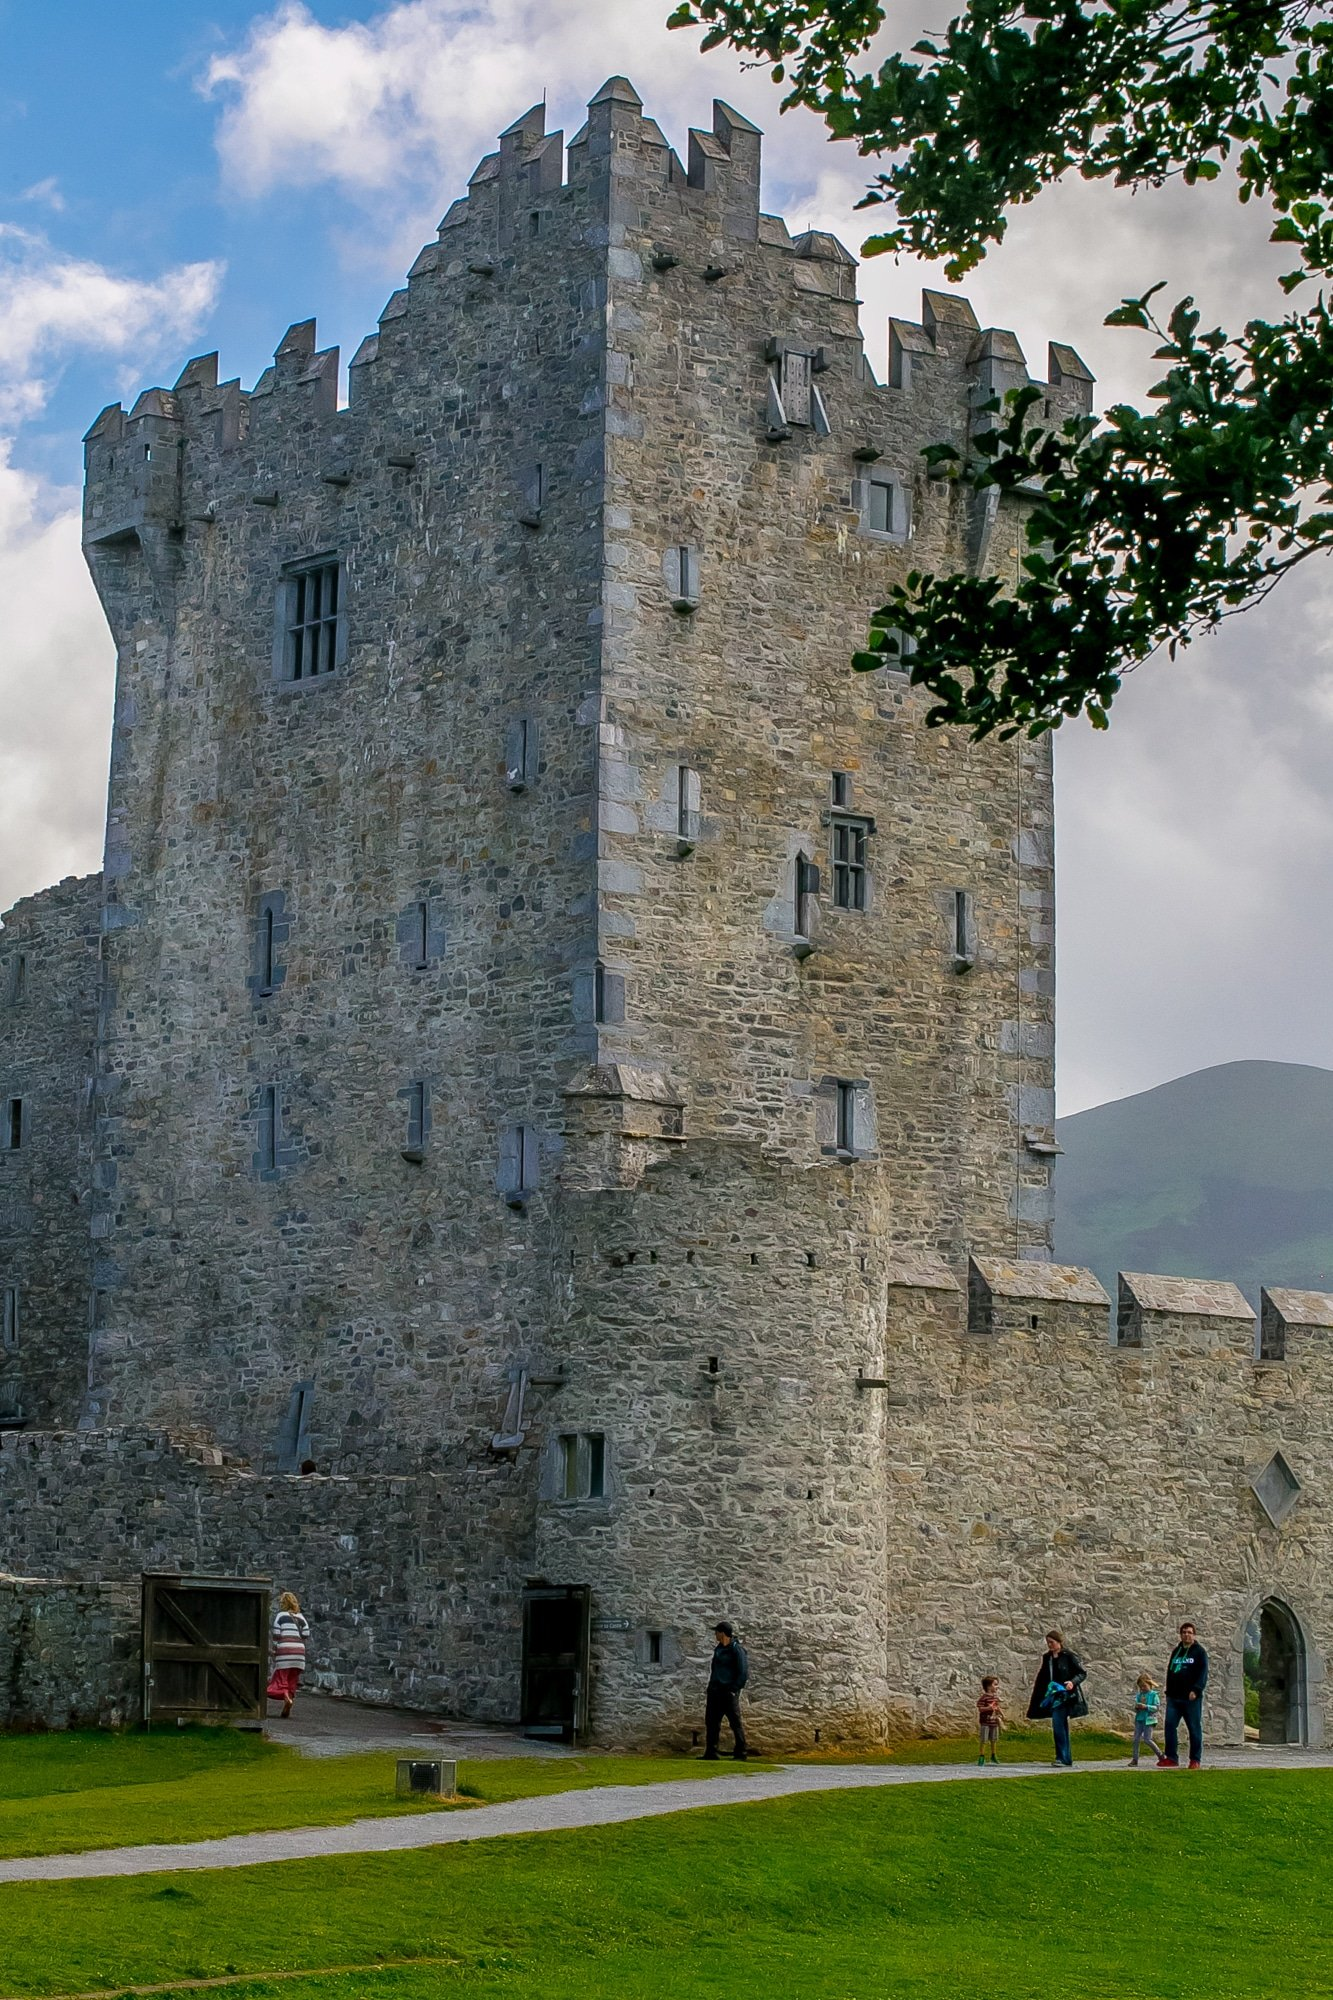 Ross Castle, Killarney National Park Ireland